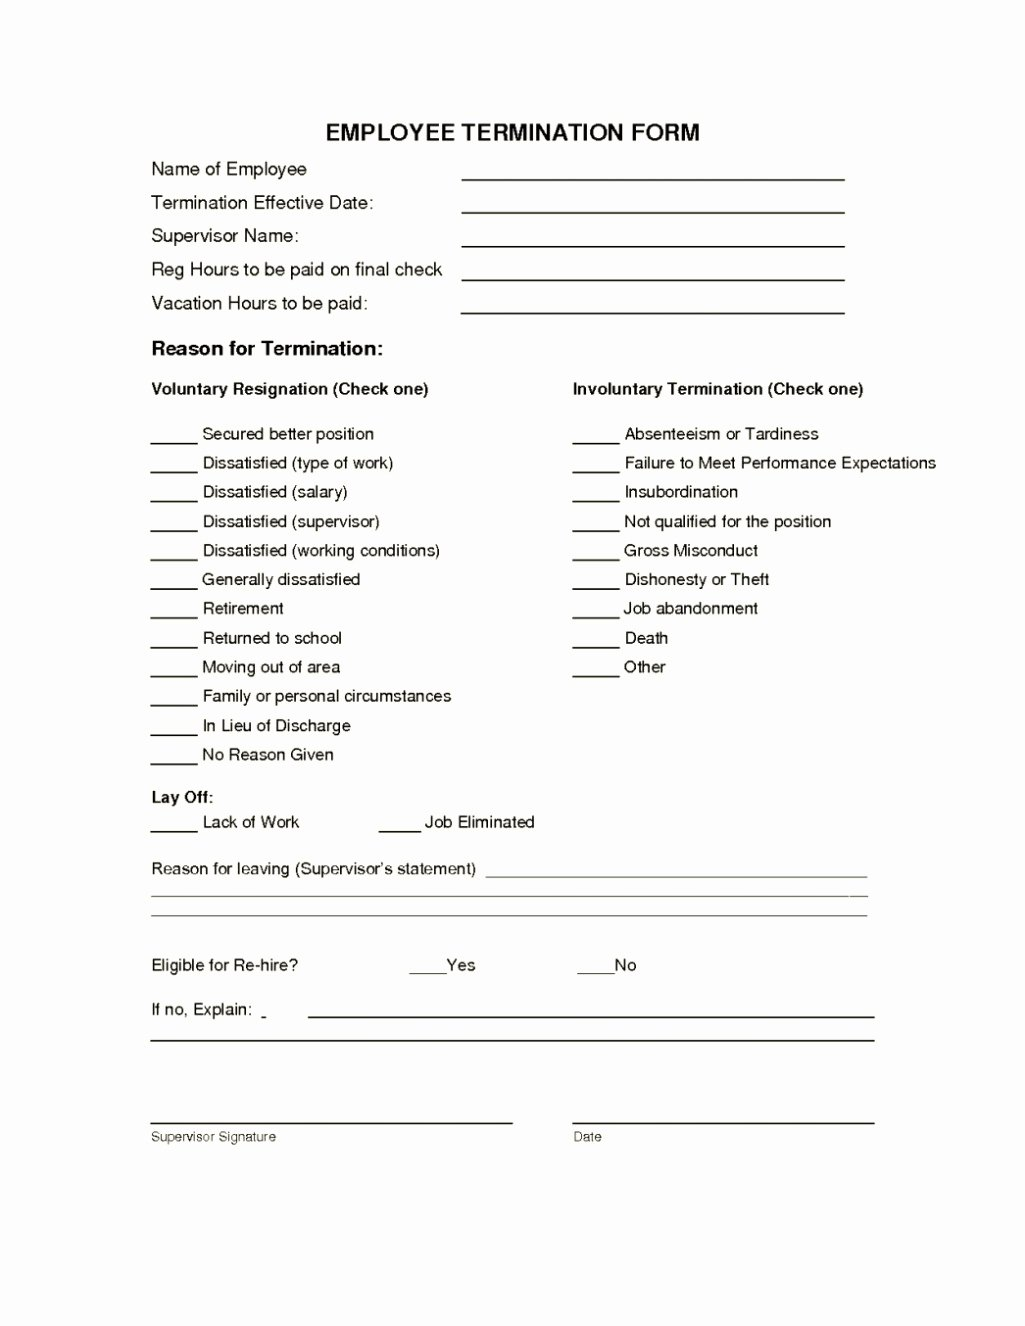 Employment Termination form Template Beautiful Employee Termination form Template Template Update234